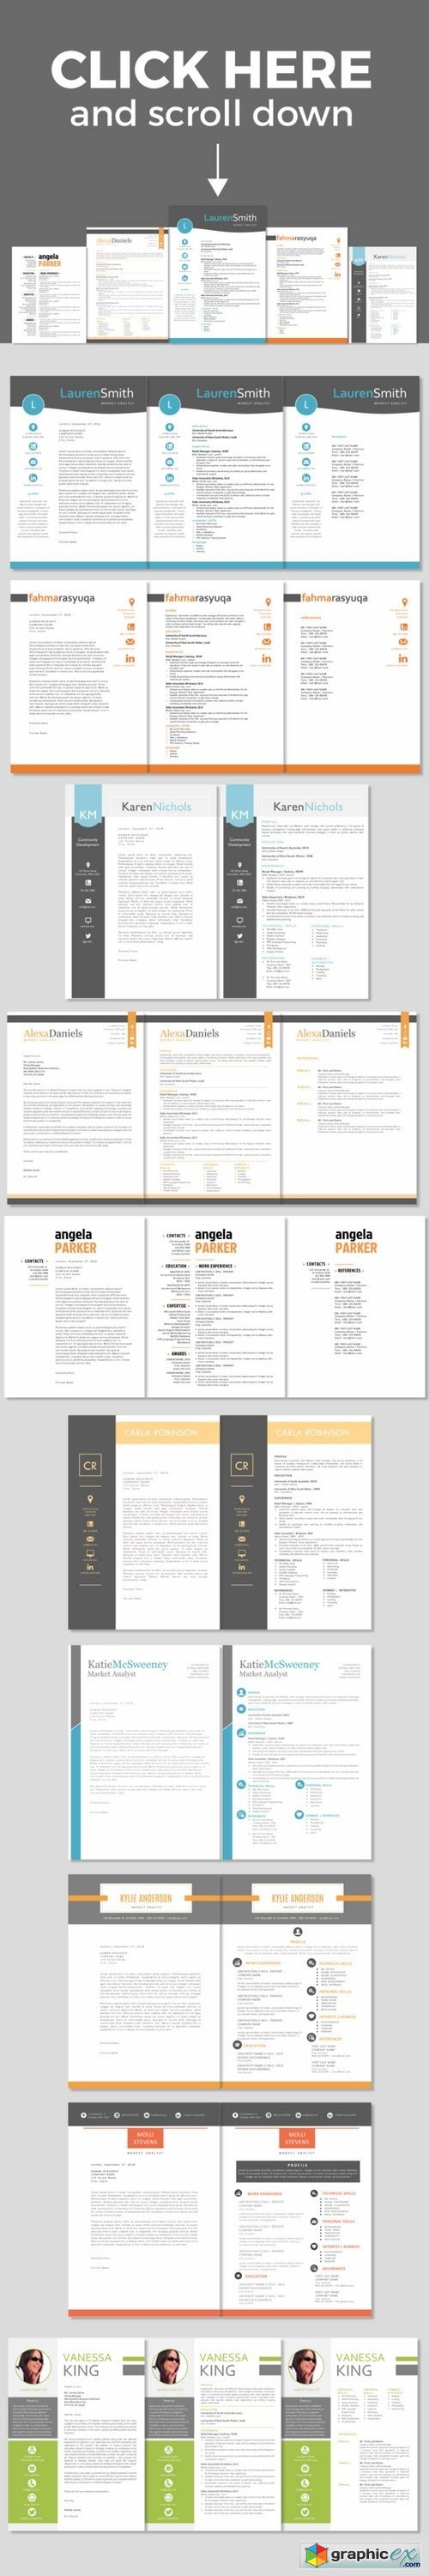 Resume And Cv Free Download Vector Stock Image Photoshop Icon